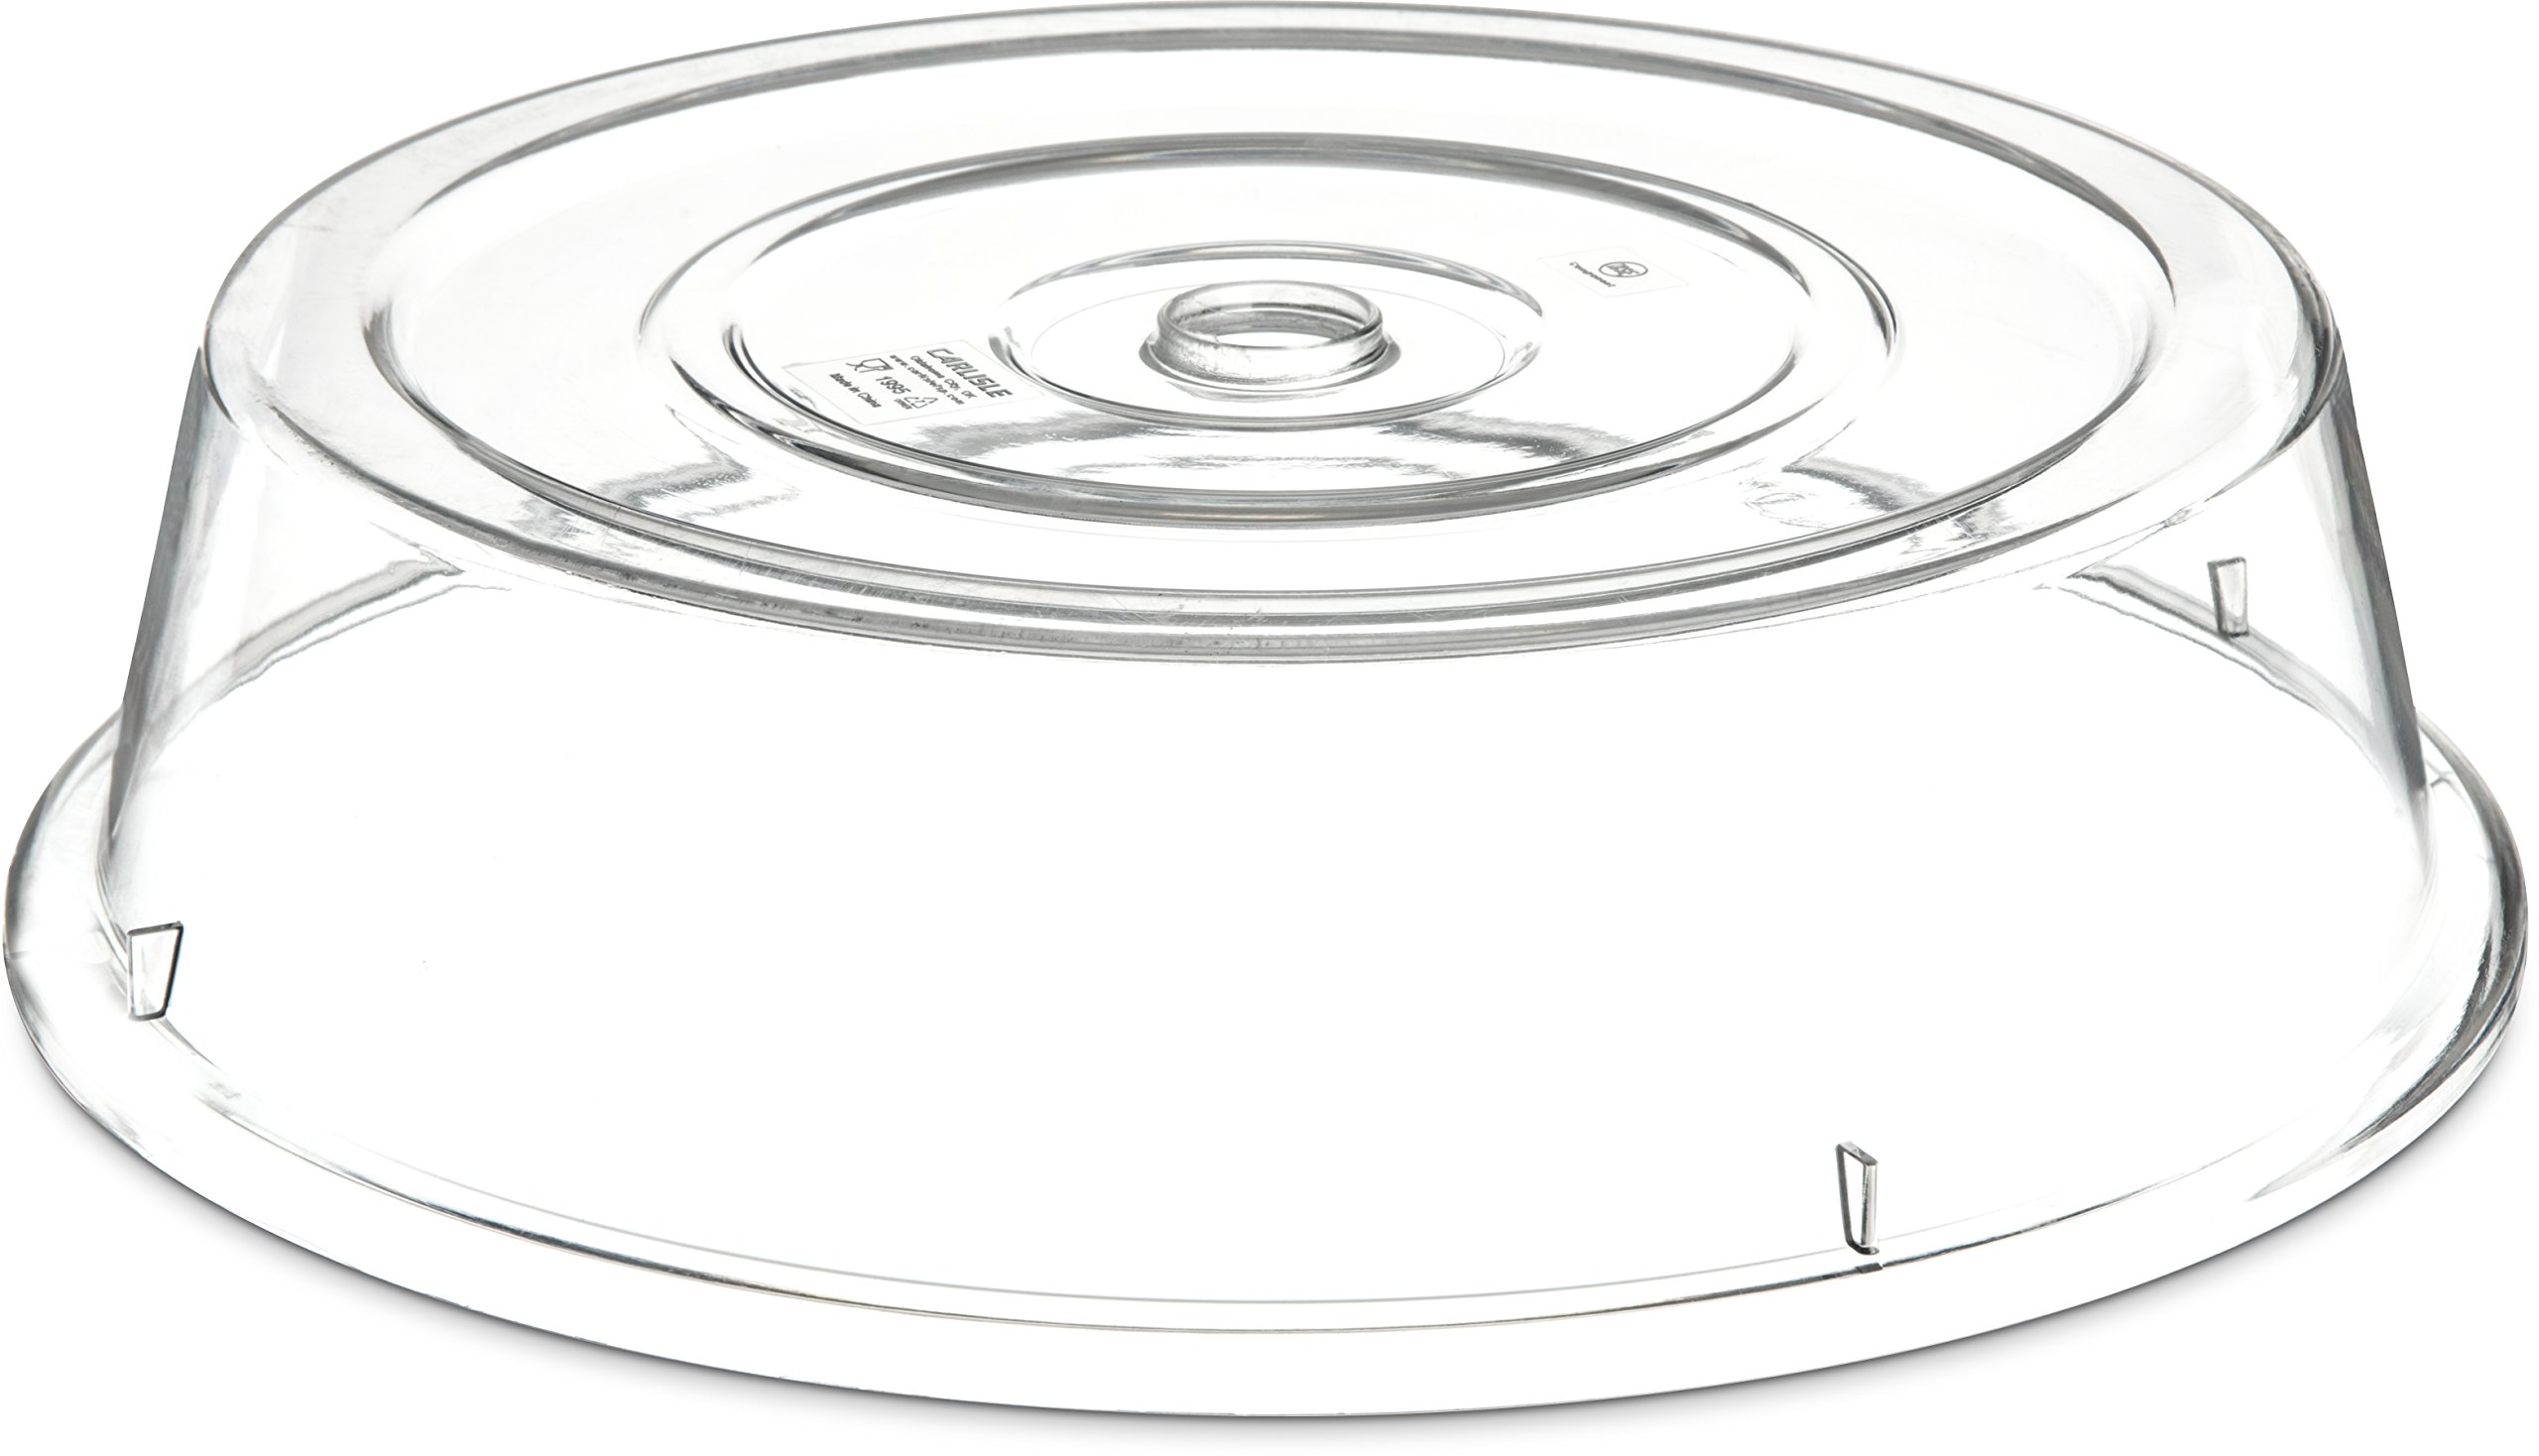 Carlisle 199407 Polycarbonate Plate Cover, 12'' Size, Clear (Case of 12)